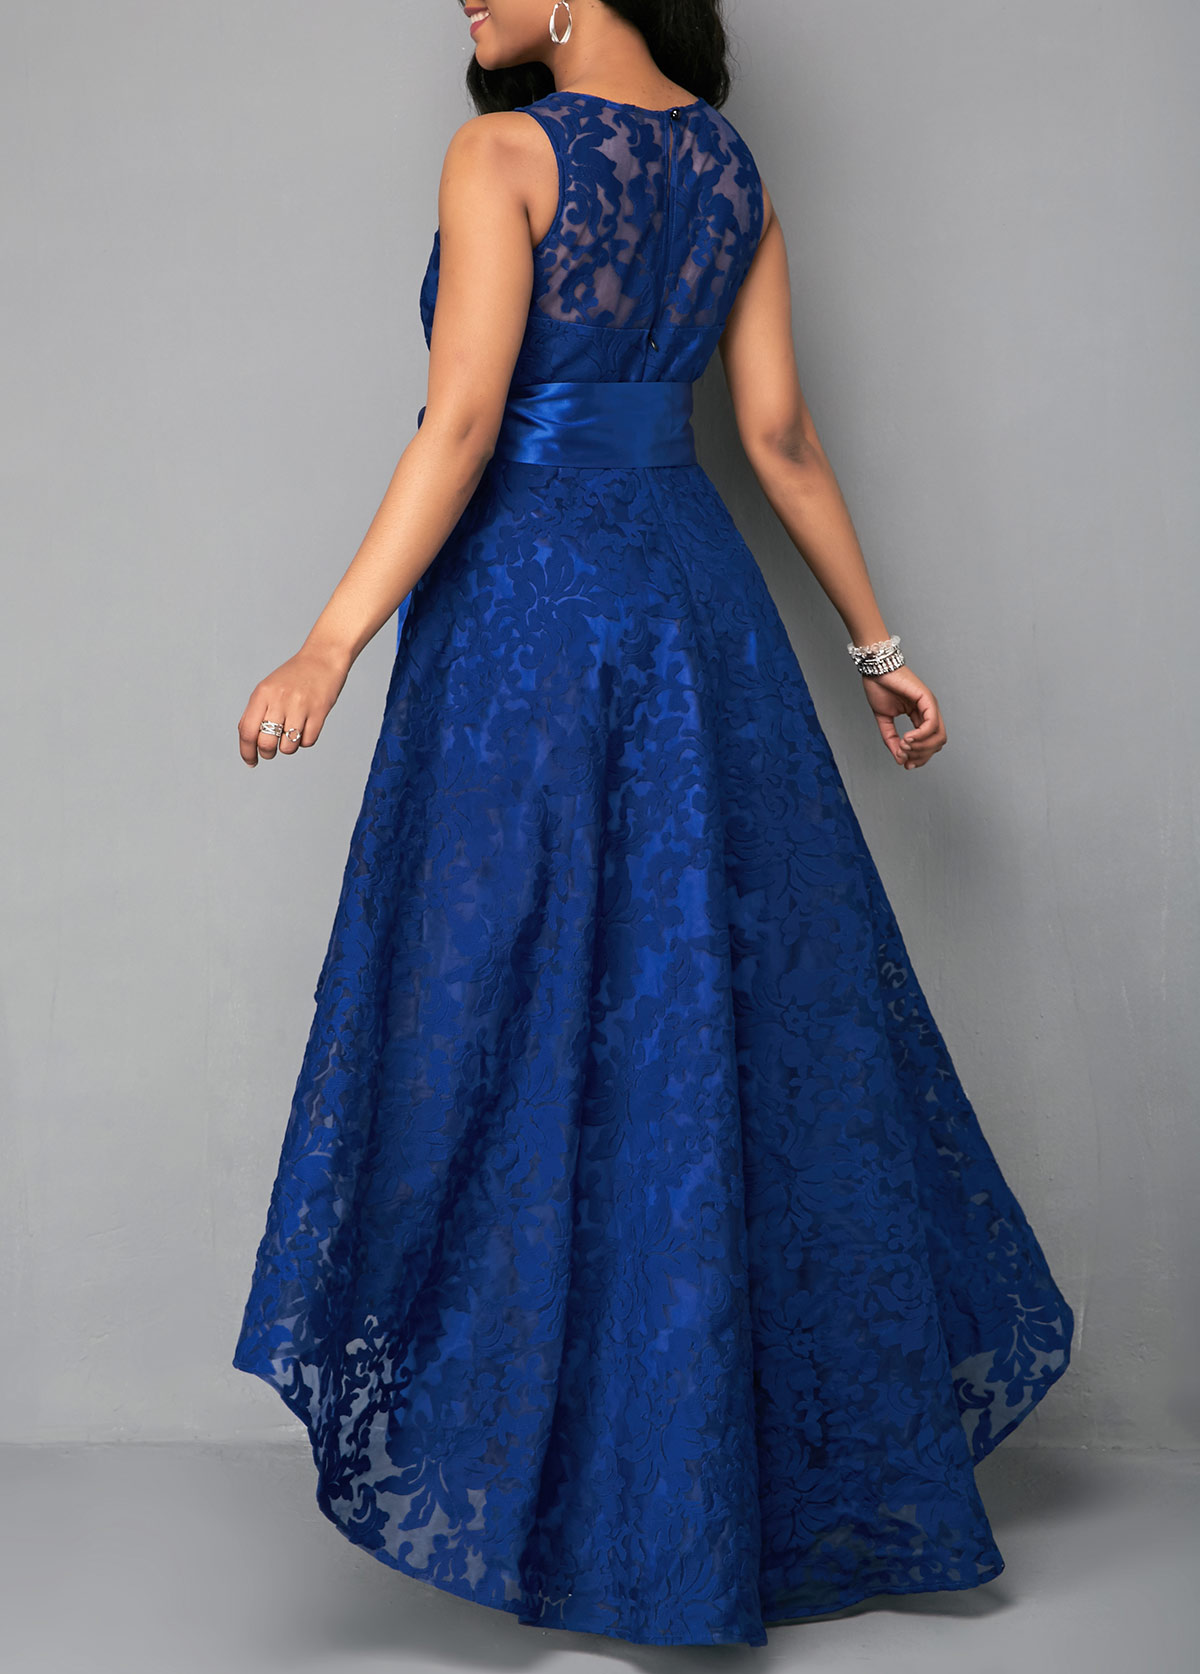 3e09dbaed2 Belted High Waist Lace Panel Maxi Dress. AddThis Sharing Buttons. Share to  Facebook Share to Pinterest